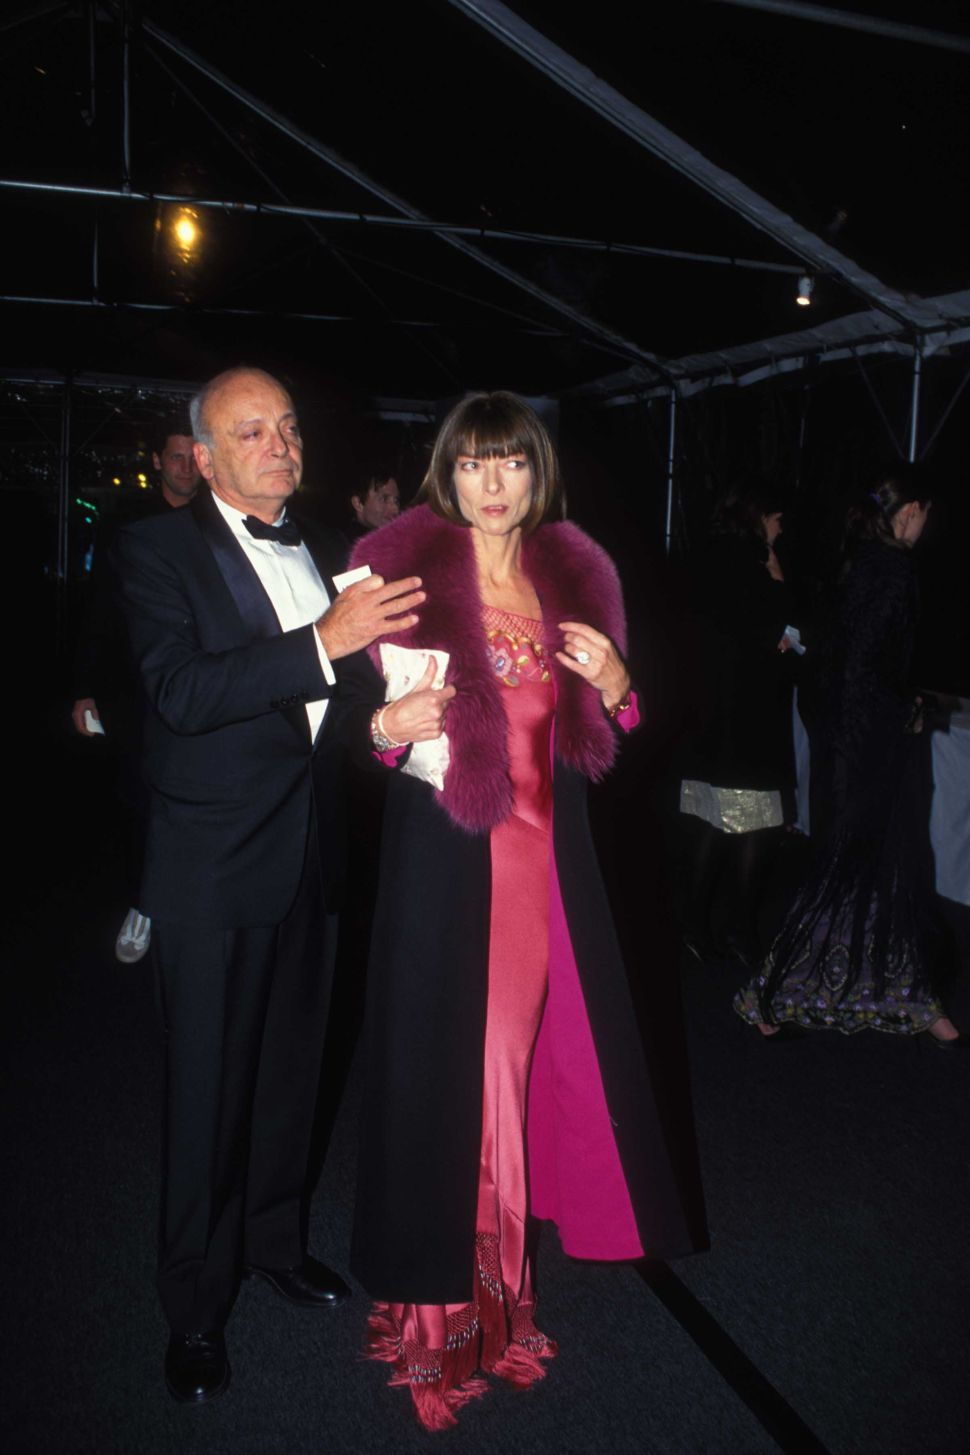 Anna Wintour's Ex David Shaffer Is Parting Ways With His Soho Loft